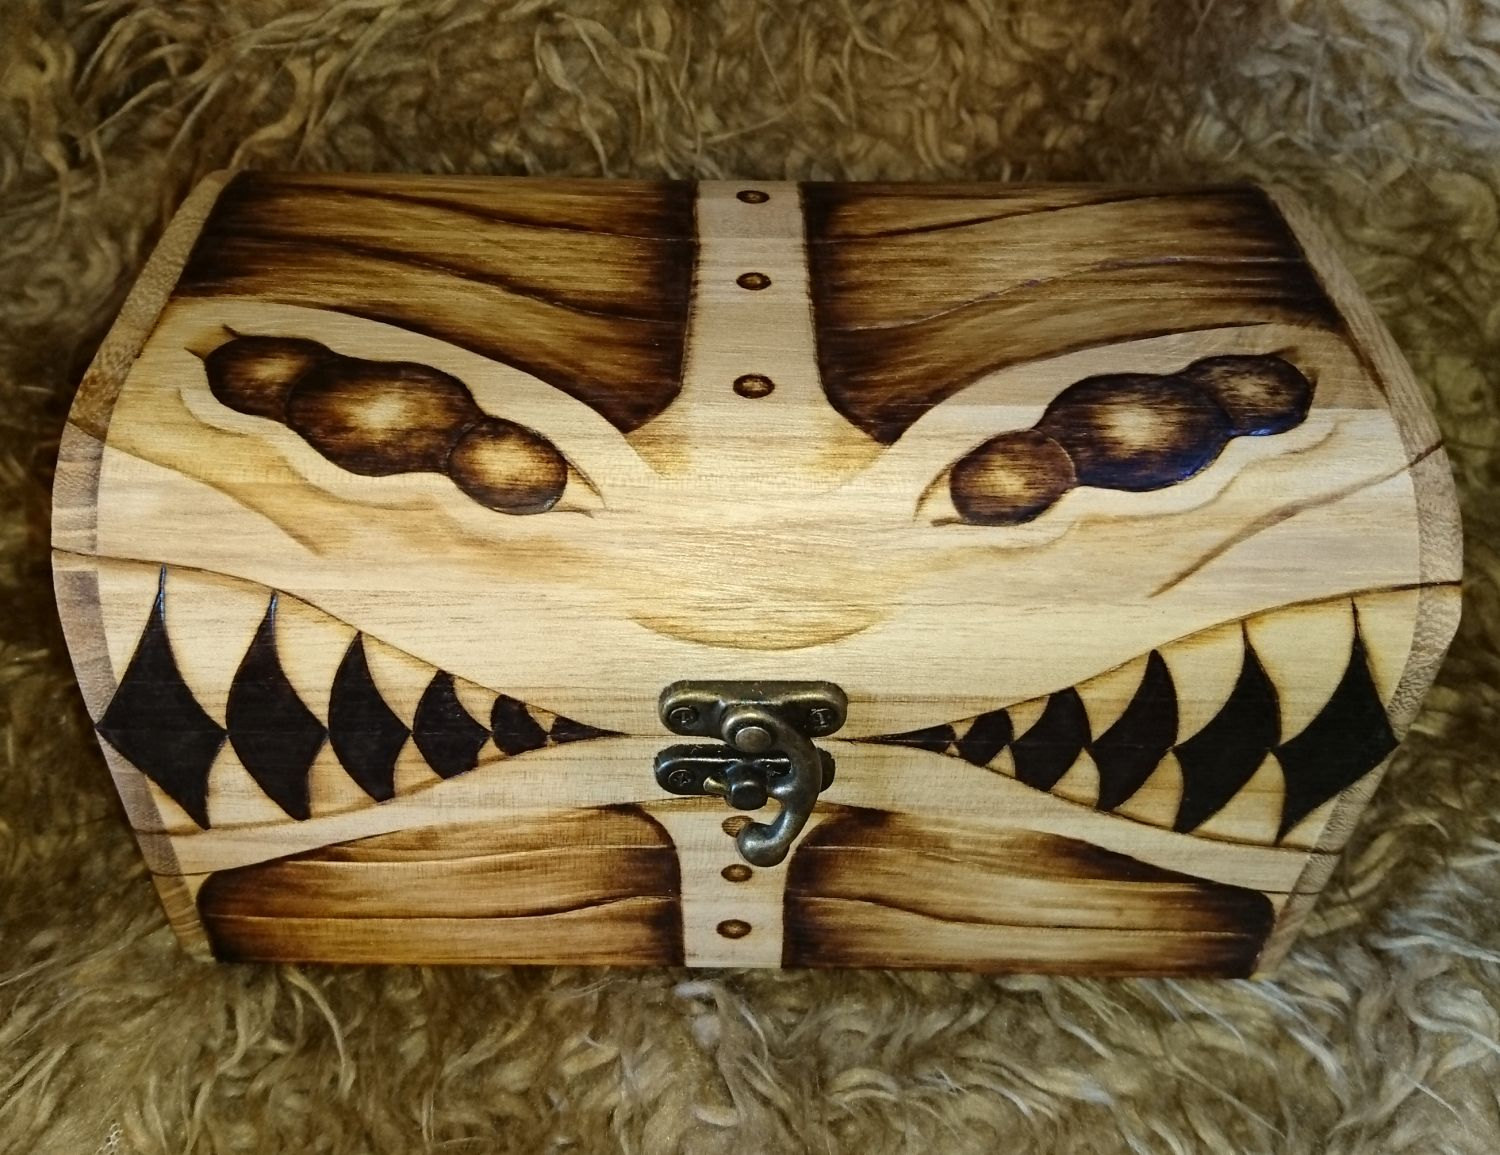 Is It A Mimic Monster Or A Wooden Chest